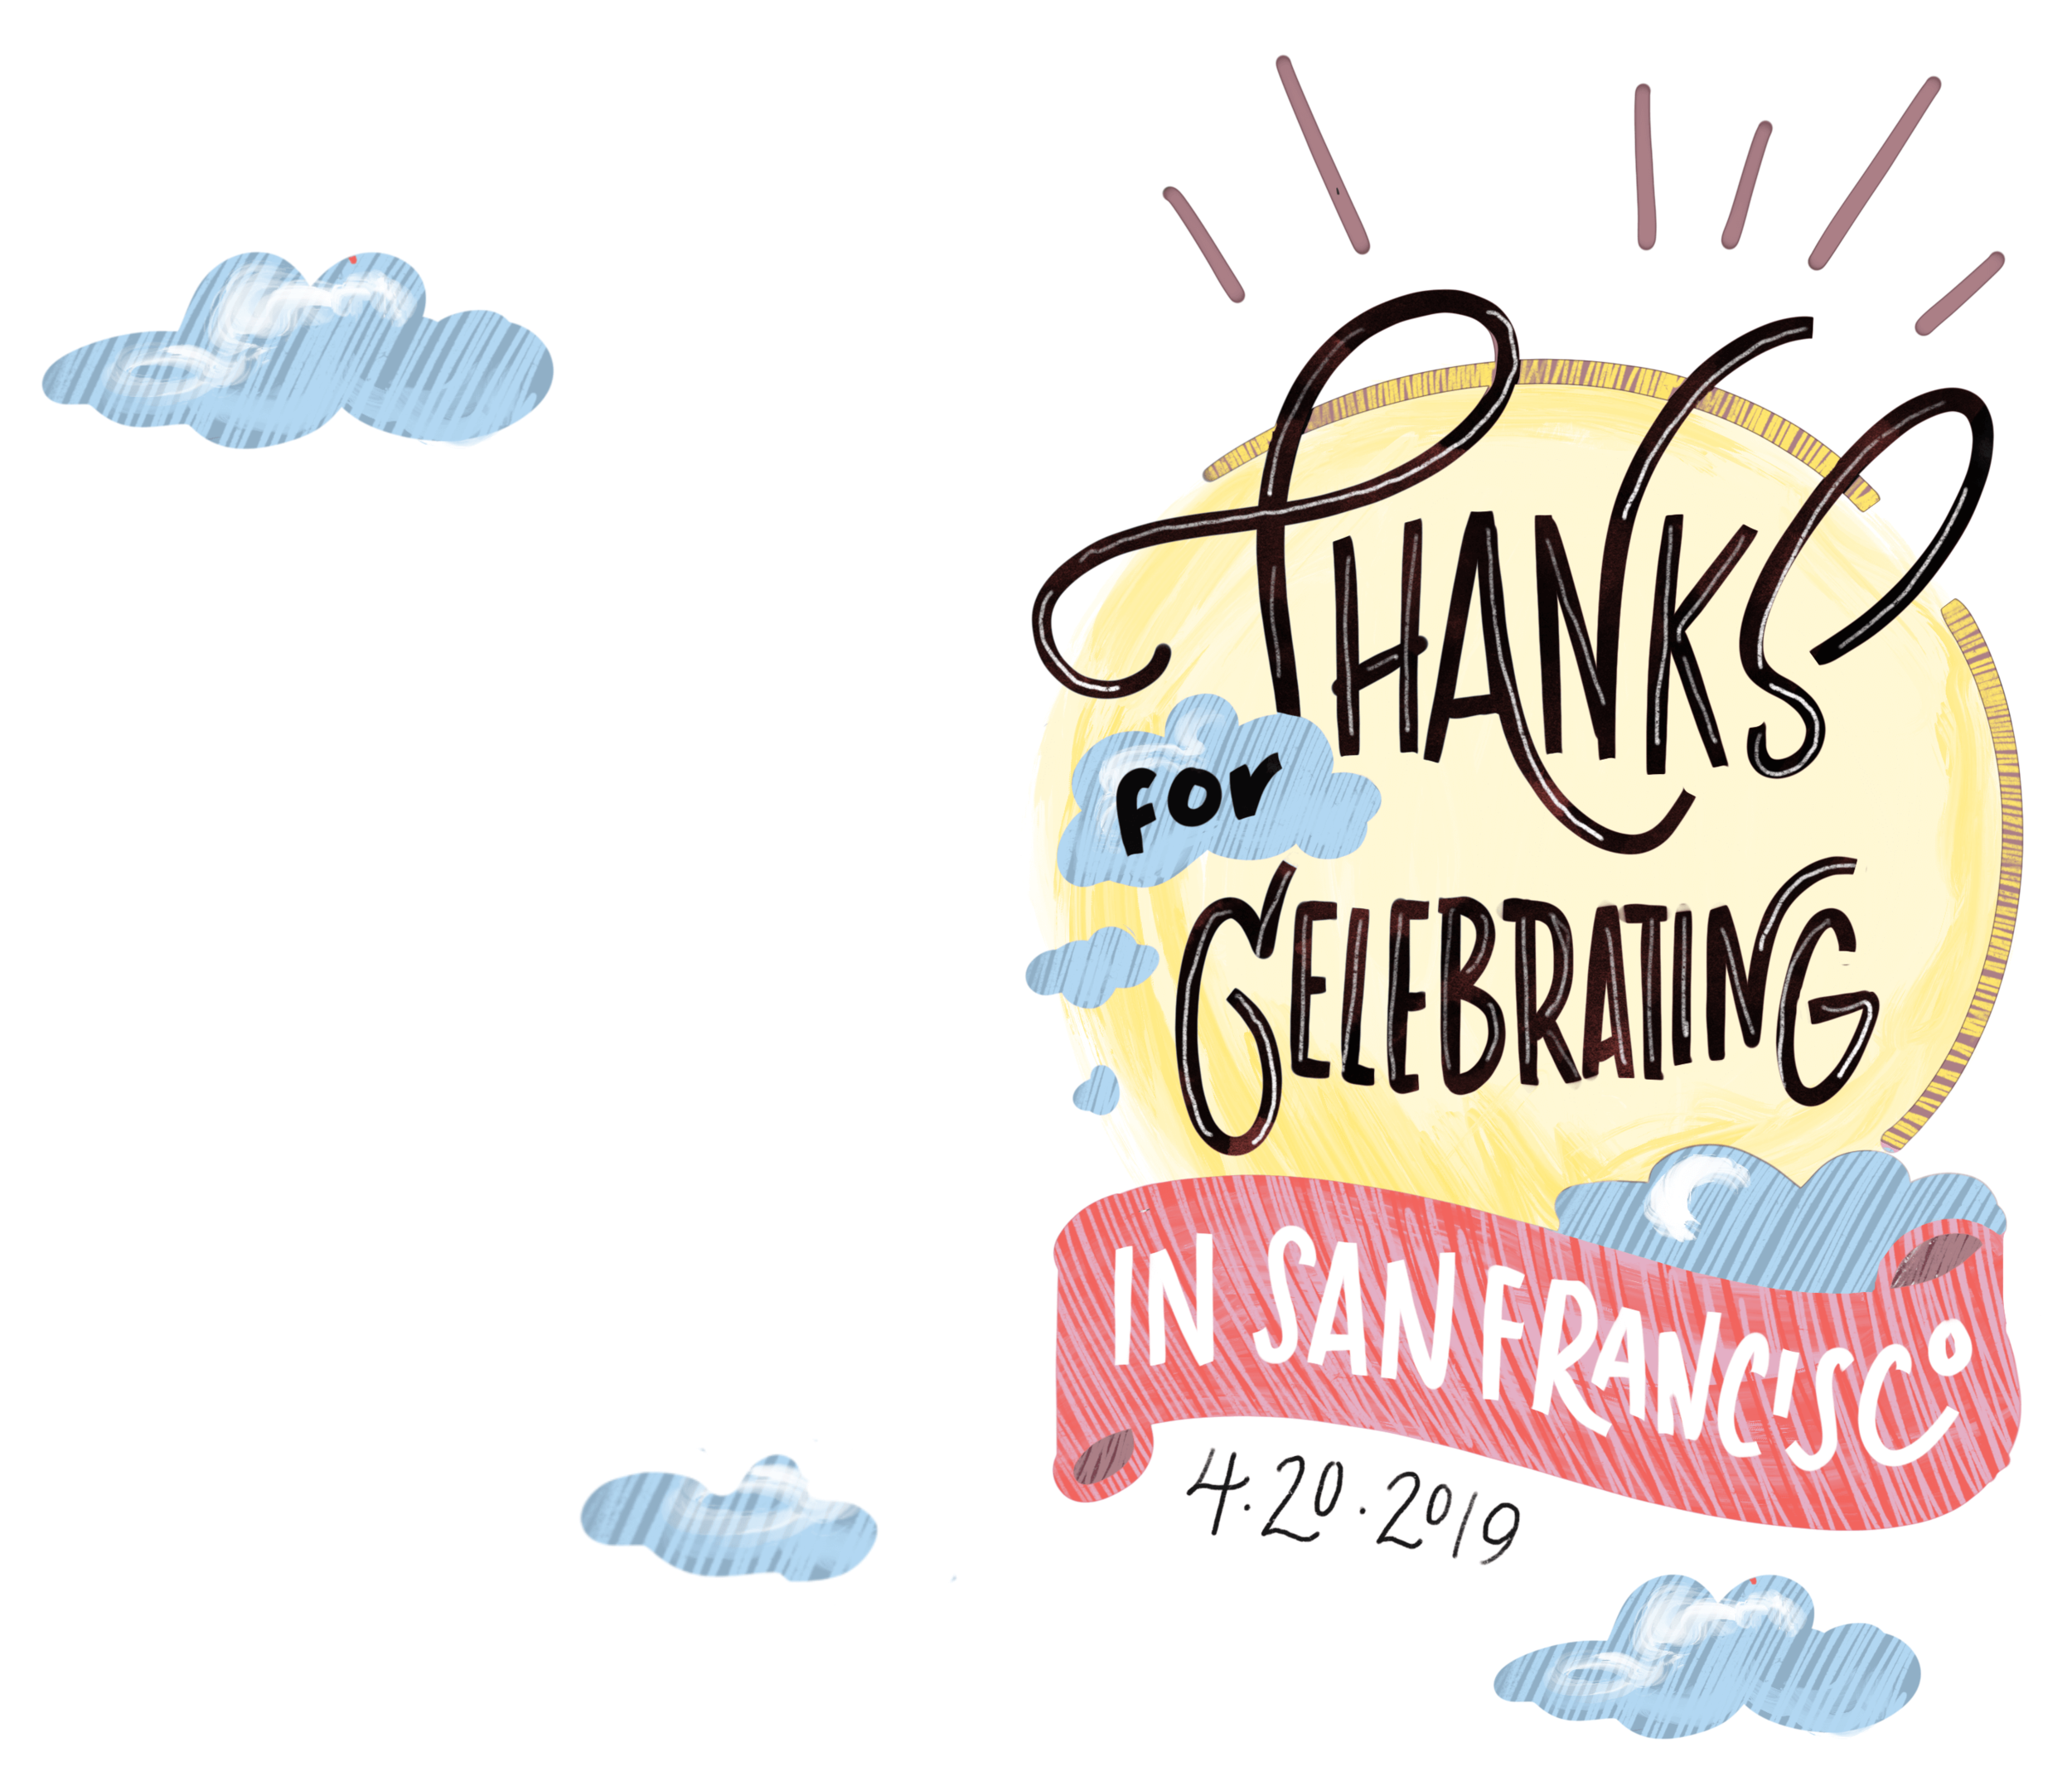 ThanksForCelebrating-Full 1.7.2019.png